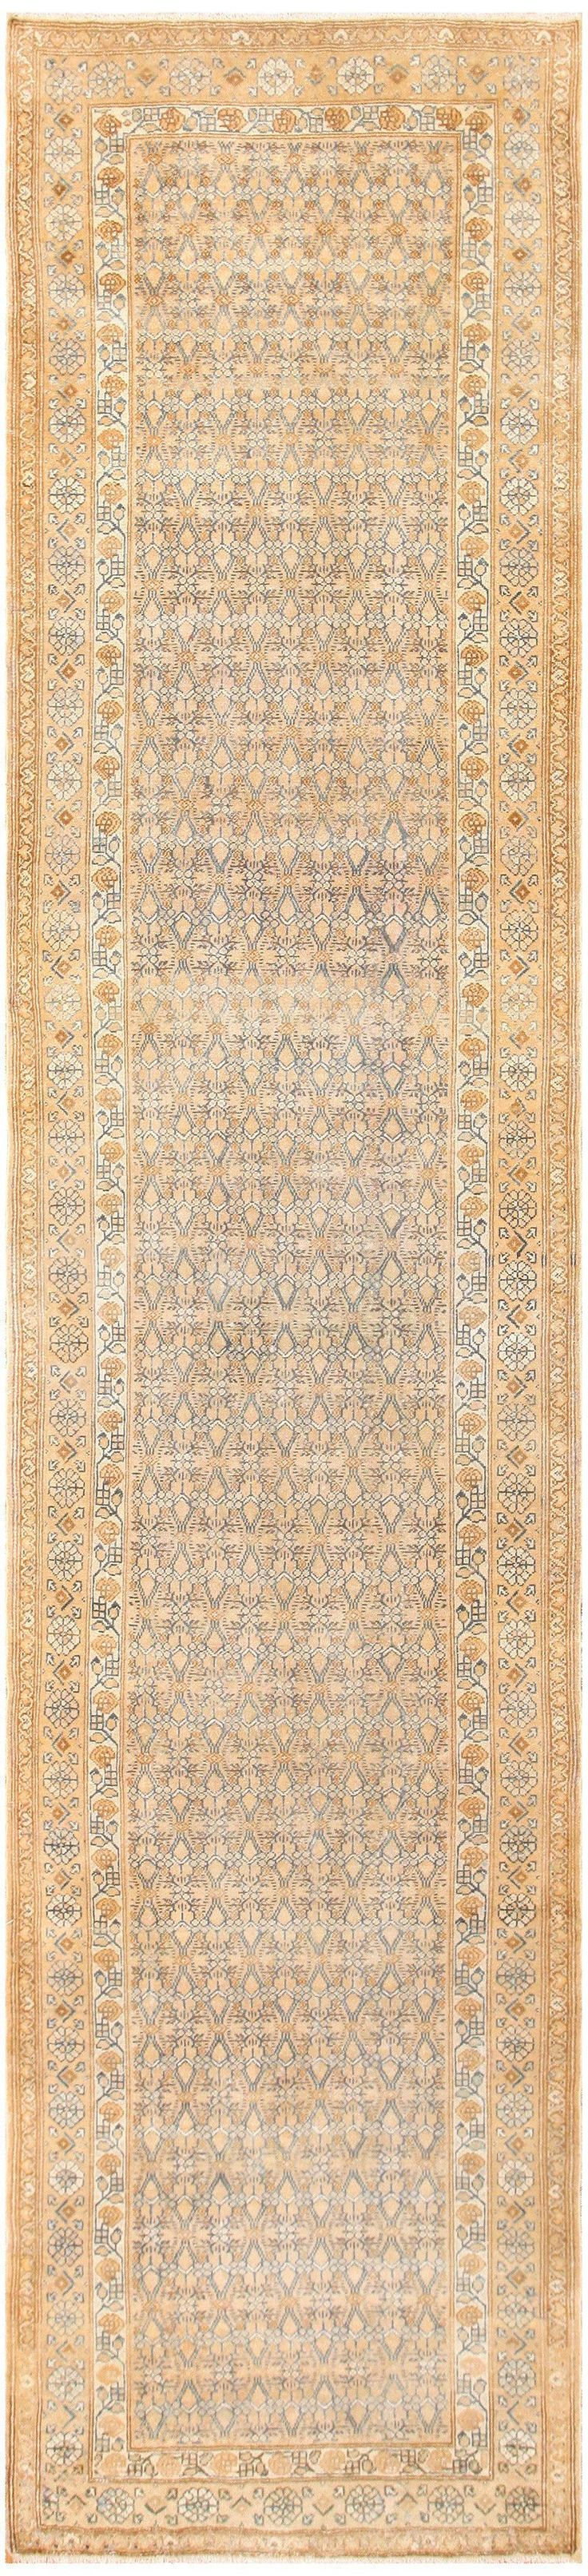 View this beautiful antiqueAlabaster colored antique Persian Malayer runner rug #50427 from the Namiyal Collection in Manhattan, New York City.